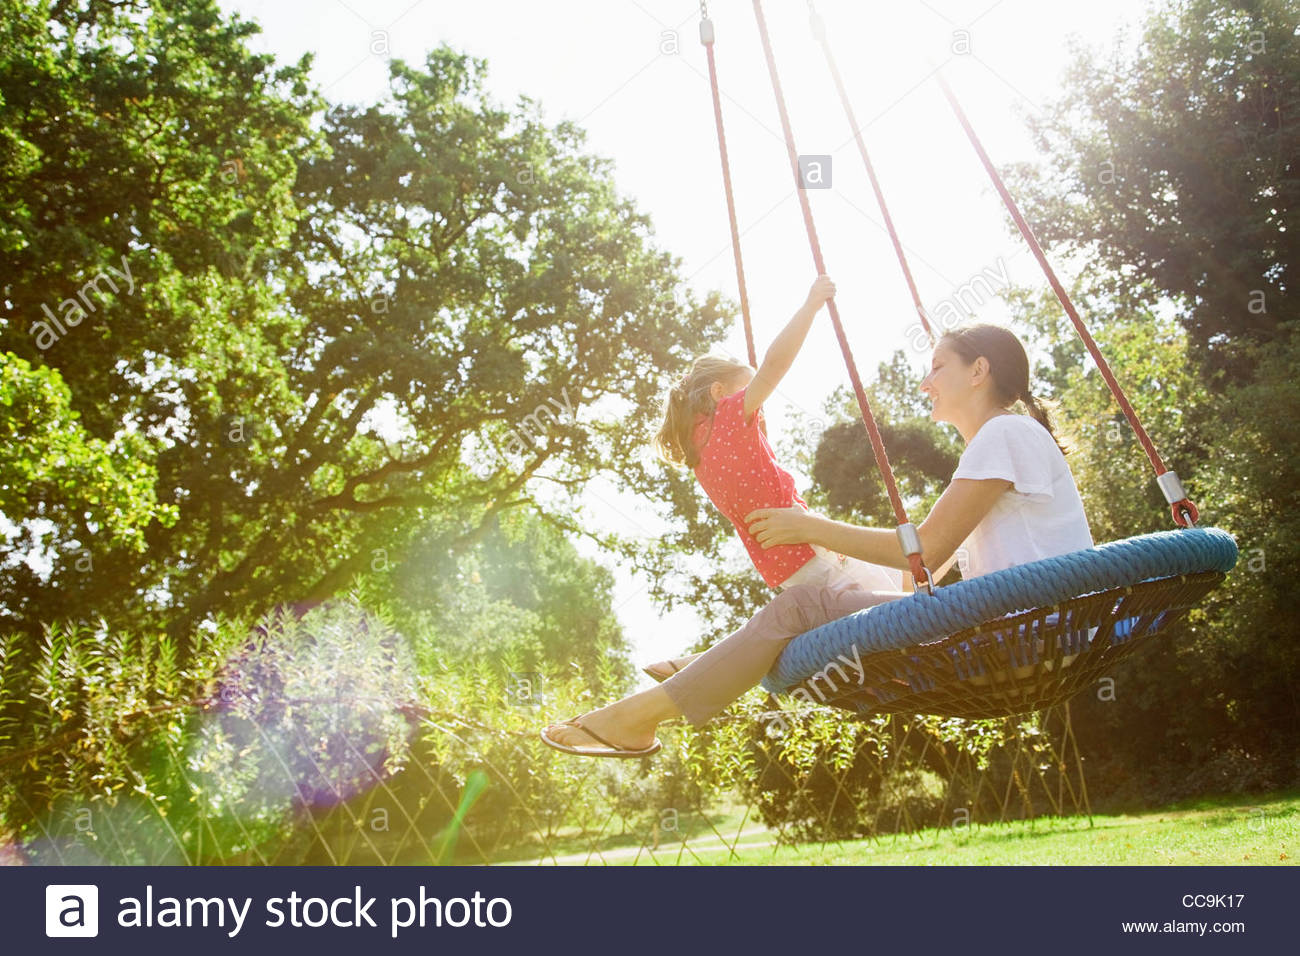 Mother and daughter on swing in sunny park - Stock Image